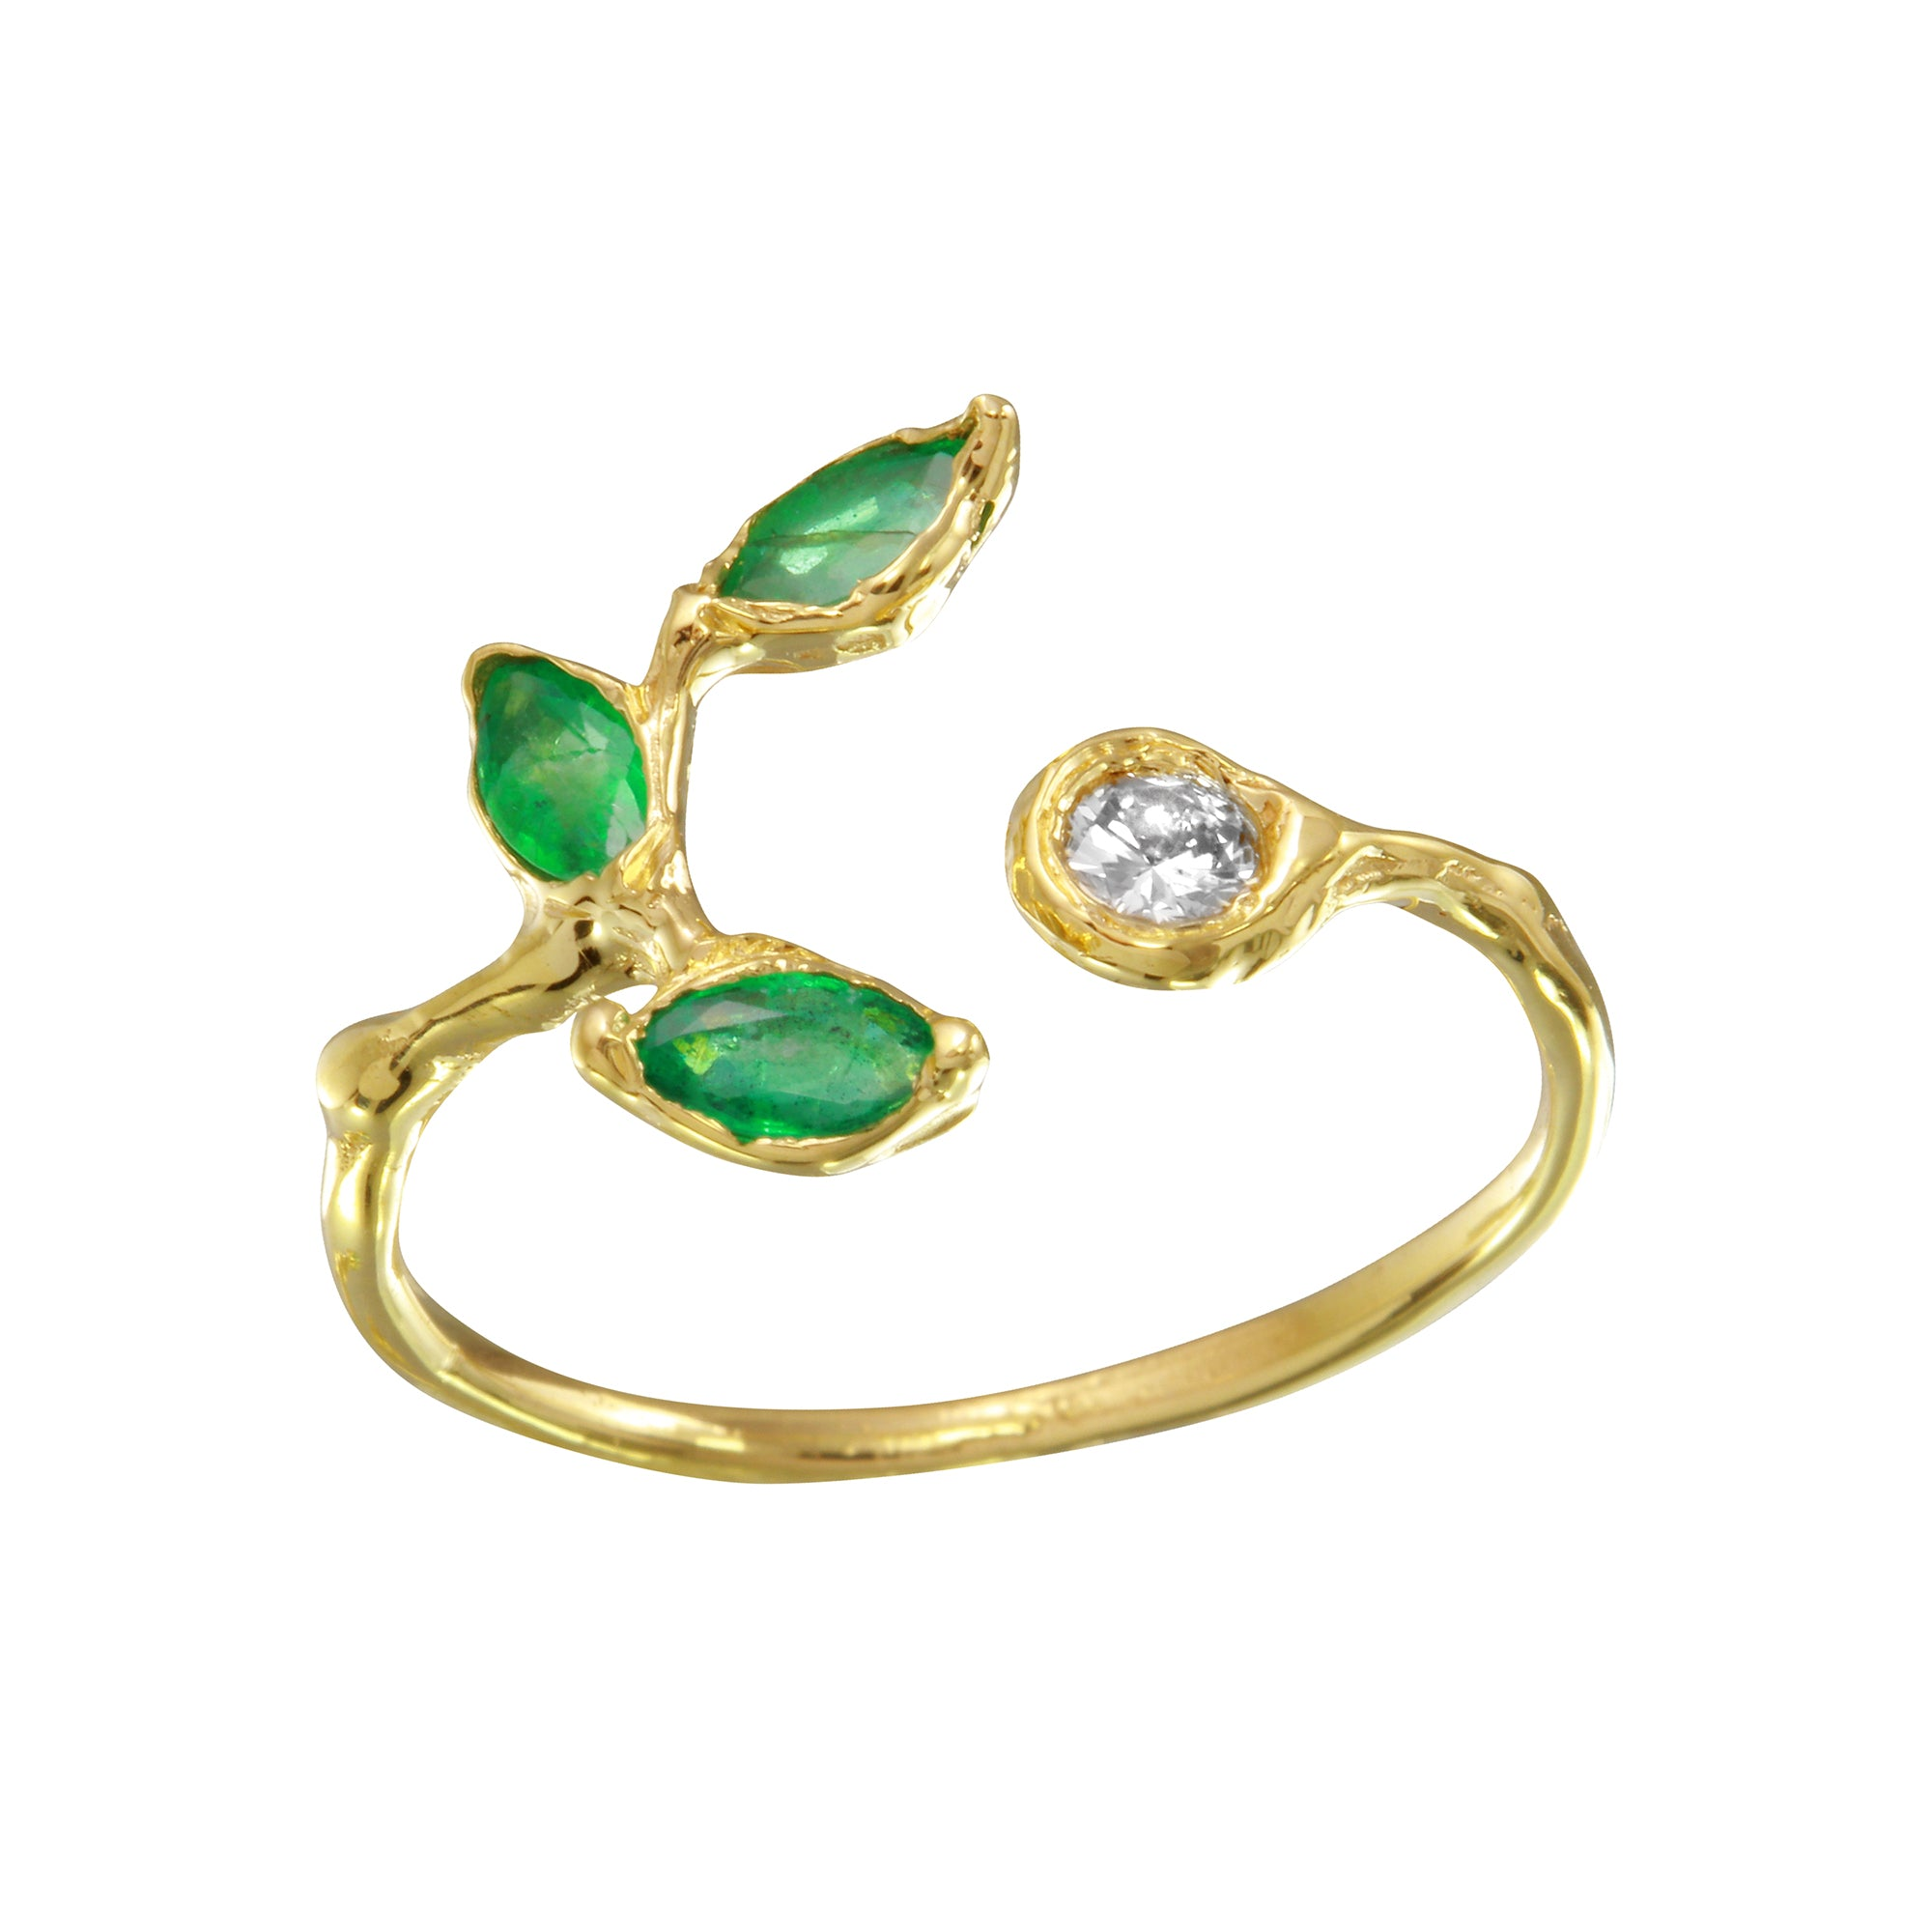 rings emerald helen pin including whitney pair a the from of emeral hay estate